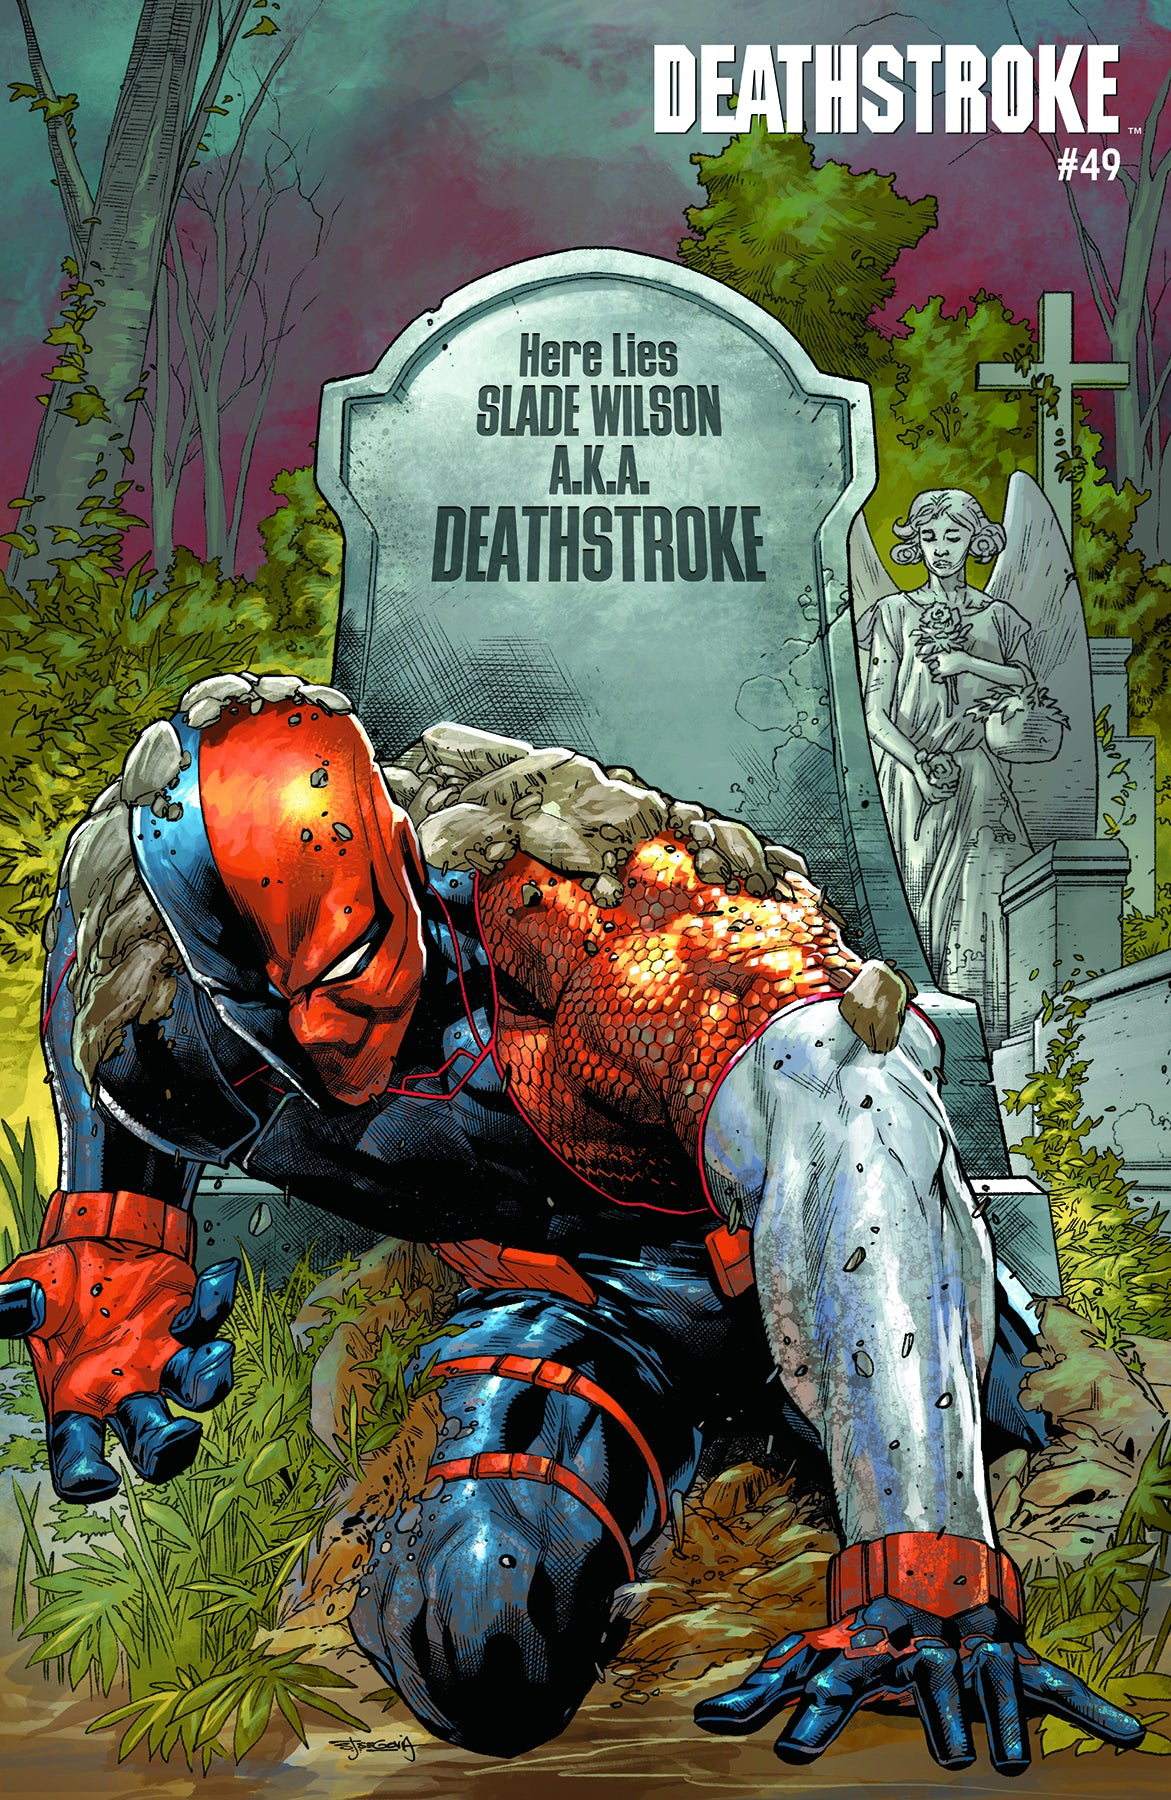 Deathstroke #49 Acetate Cover